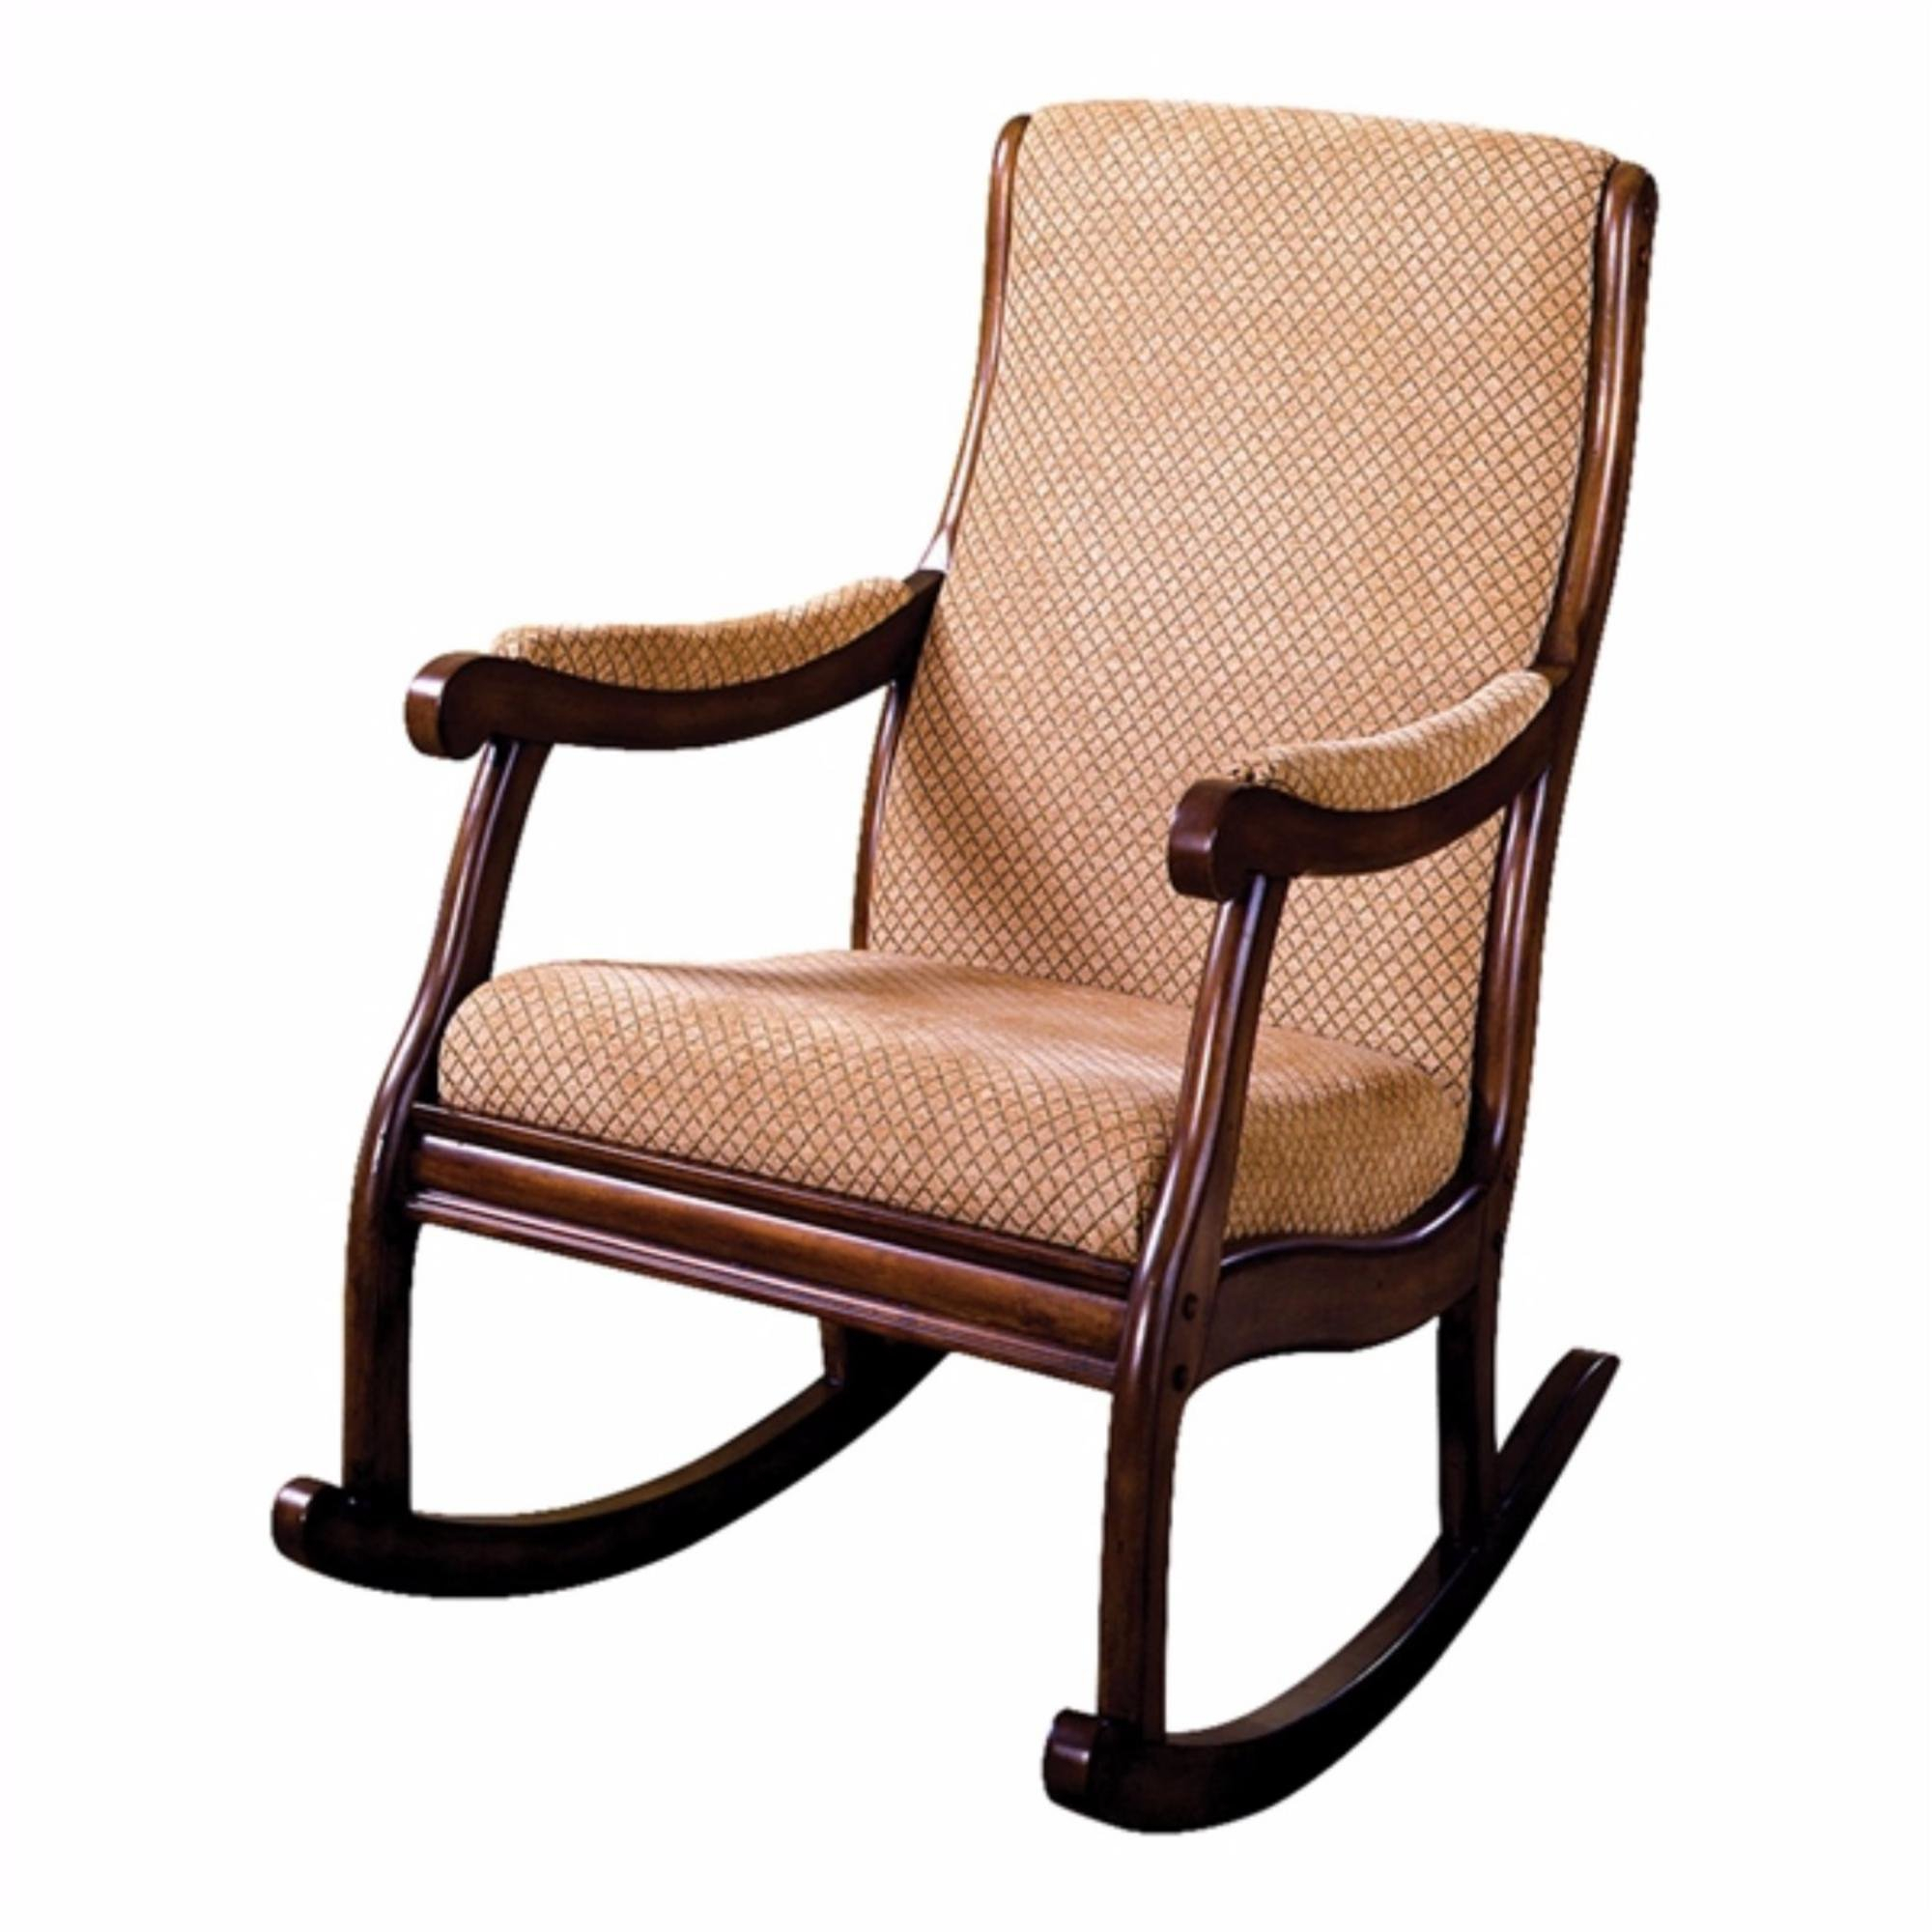 Bernardyn Rocking Chair For Beige Fabric And Cherry Wood Rocking Chairs (View 9 of 20)